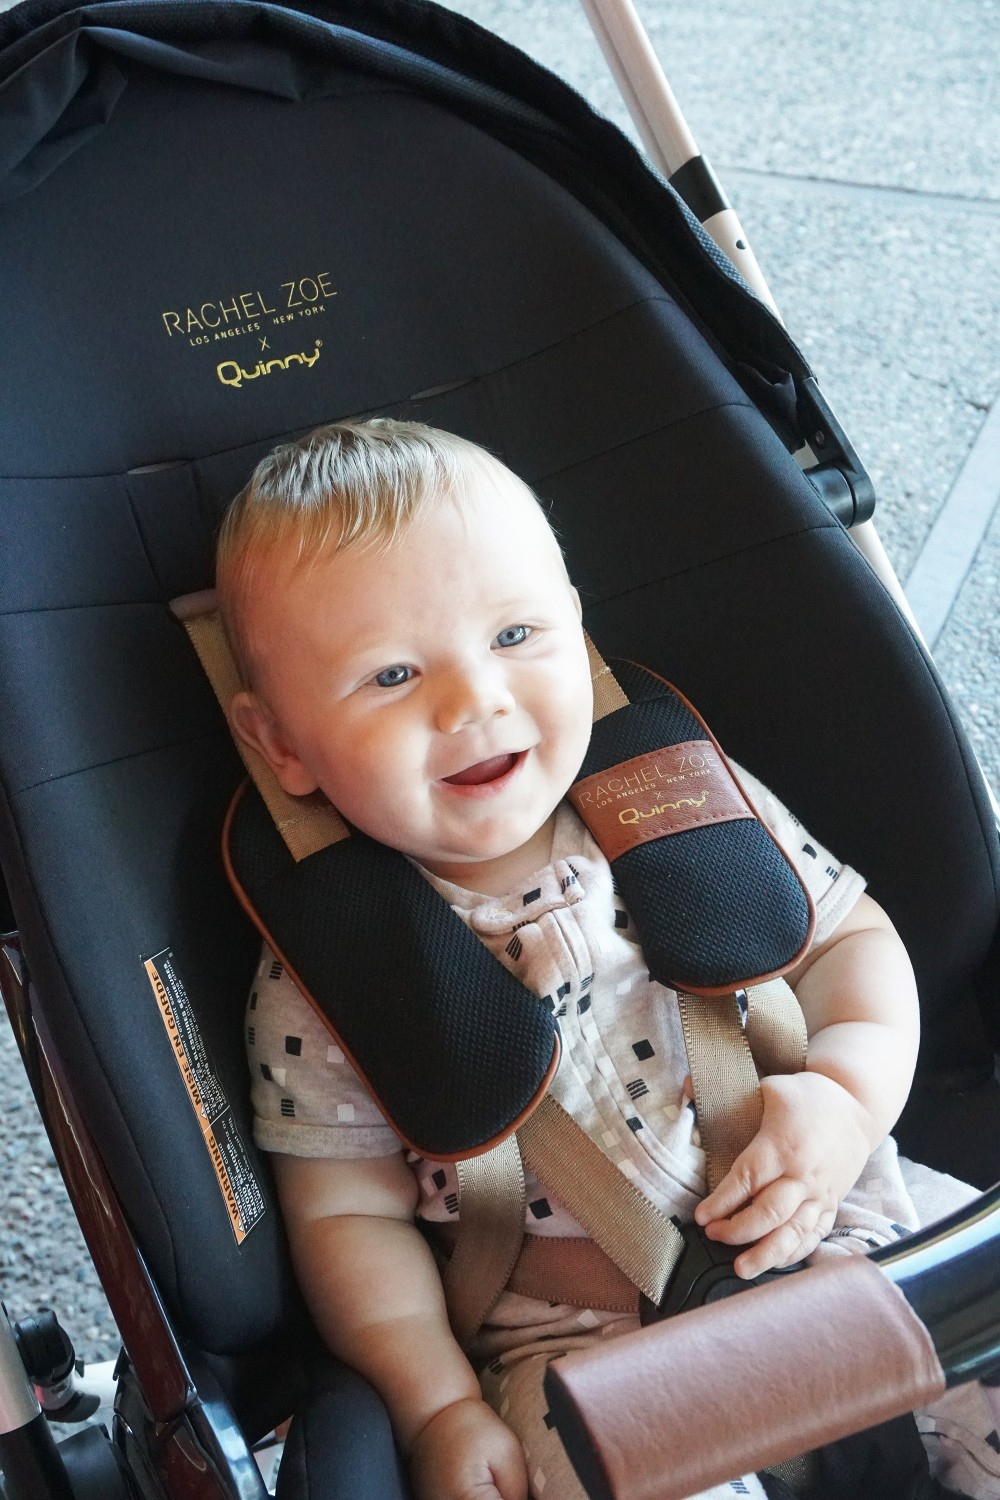 Review of Rachel Zoe x Quinny Moodd Stroller-Quinny Moodd Stroller-Modern Stroller-It Stroller for 2017-Chic Baby Stroller-Have Need Want-Baby Registry List Products-Baby Registry Must Have Item 6